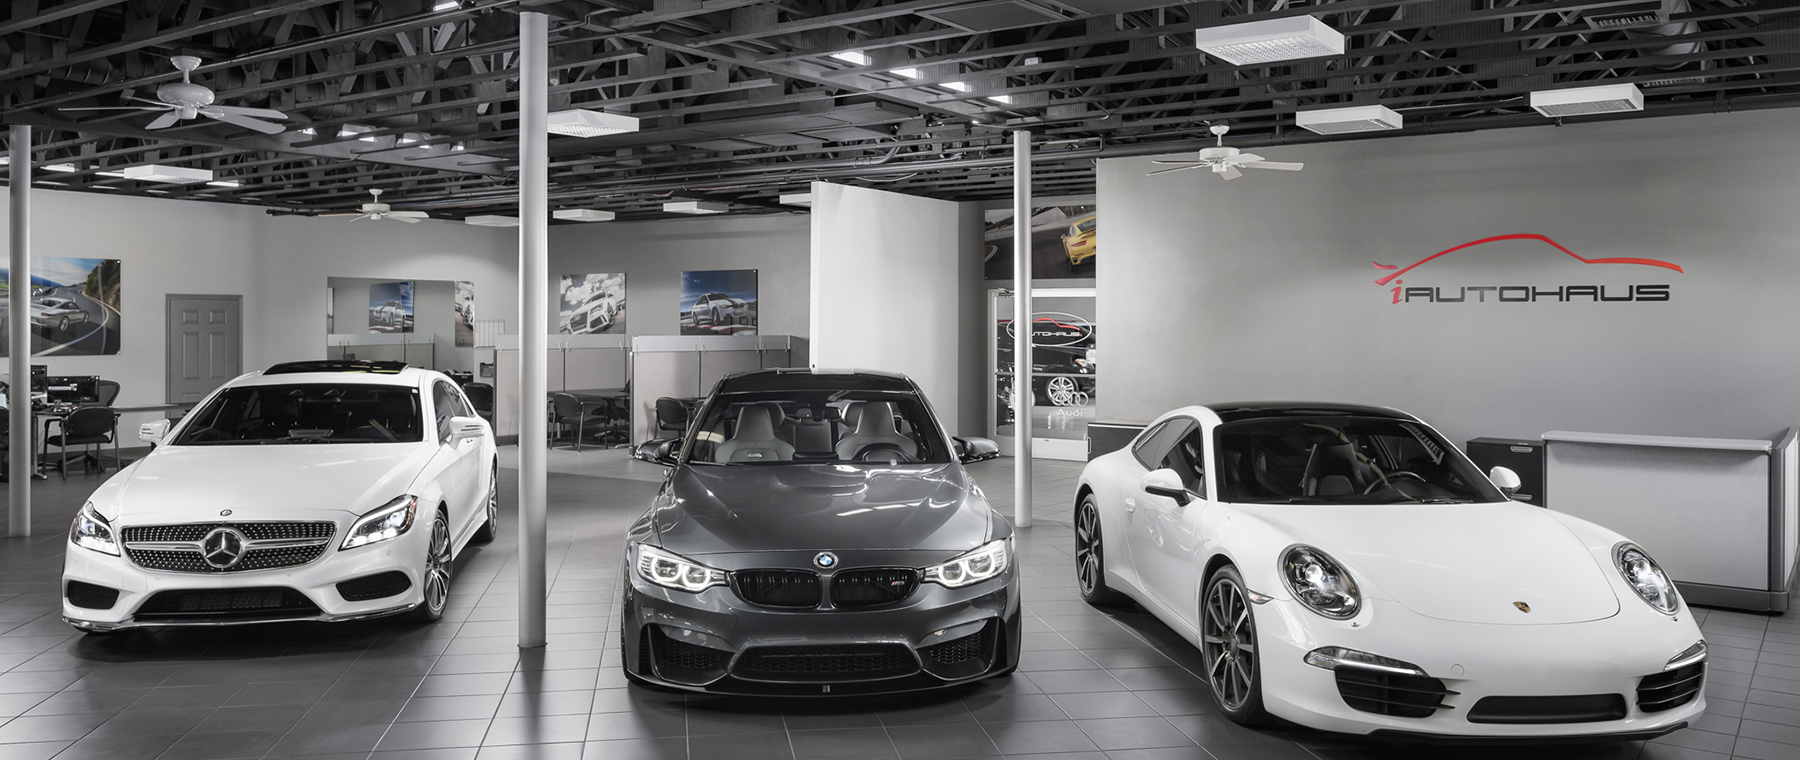 Luxury Auto Sales >> European German Asian Luxury Auto Sales And Service In Scottsdale Az